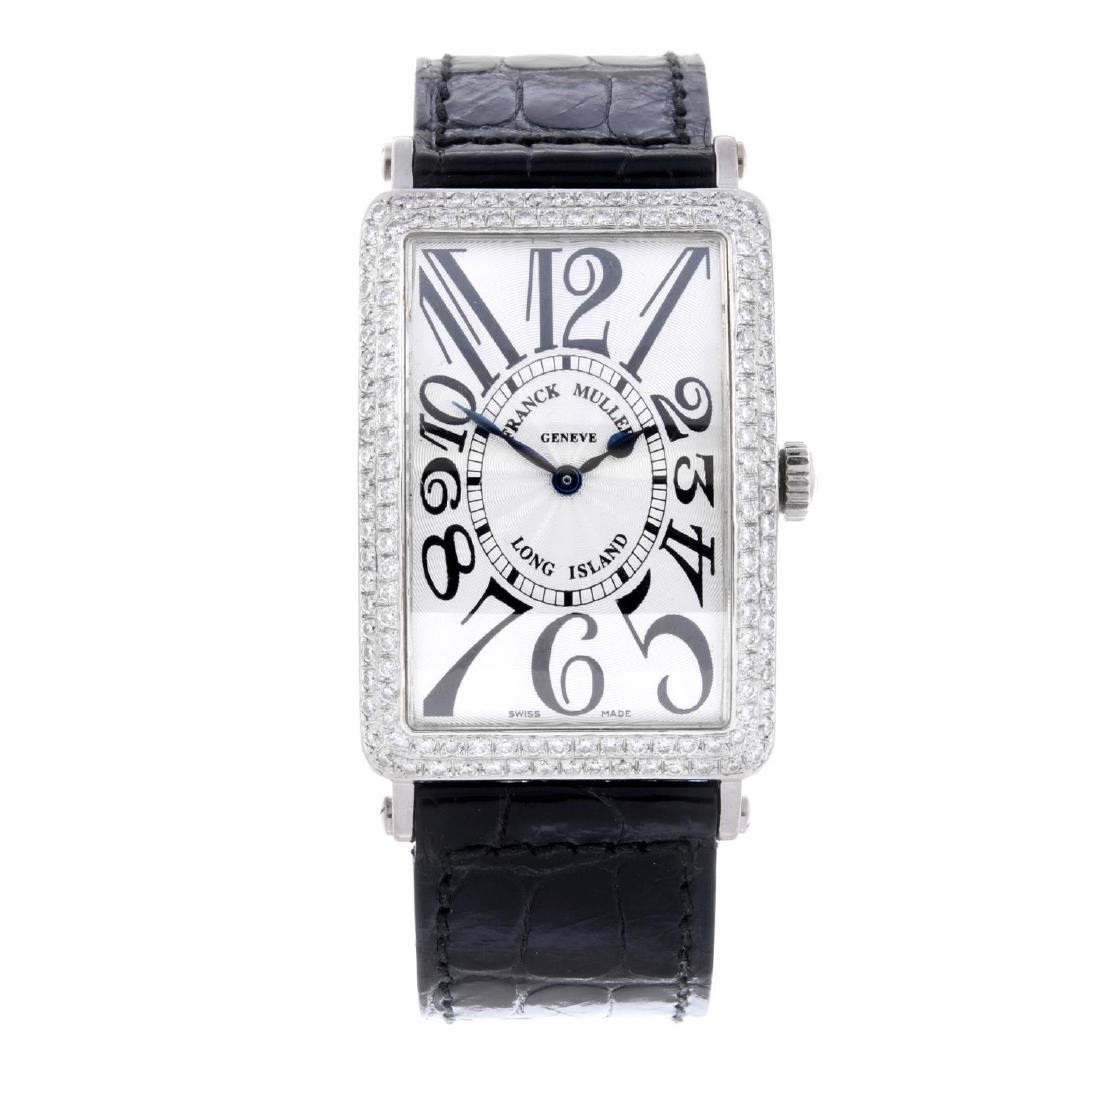 FRANCK MULLER - a gentleman's Long Island wrist watch.